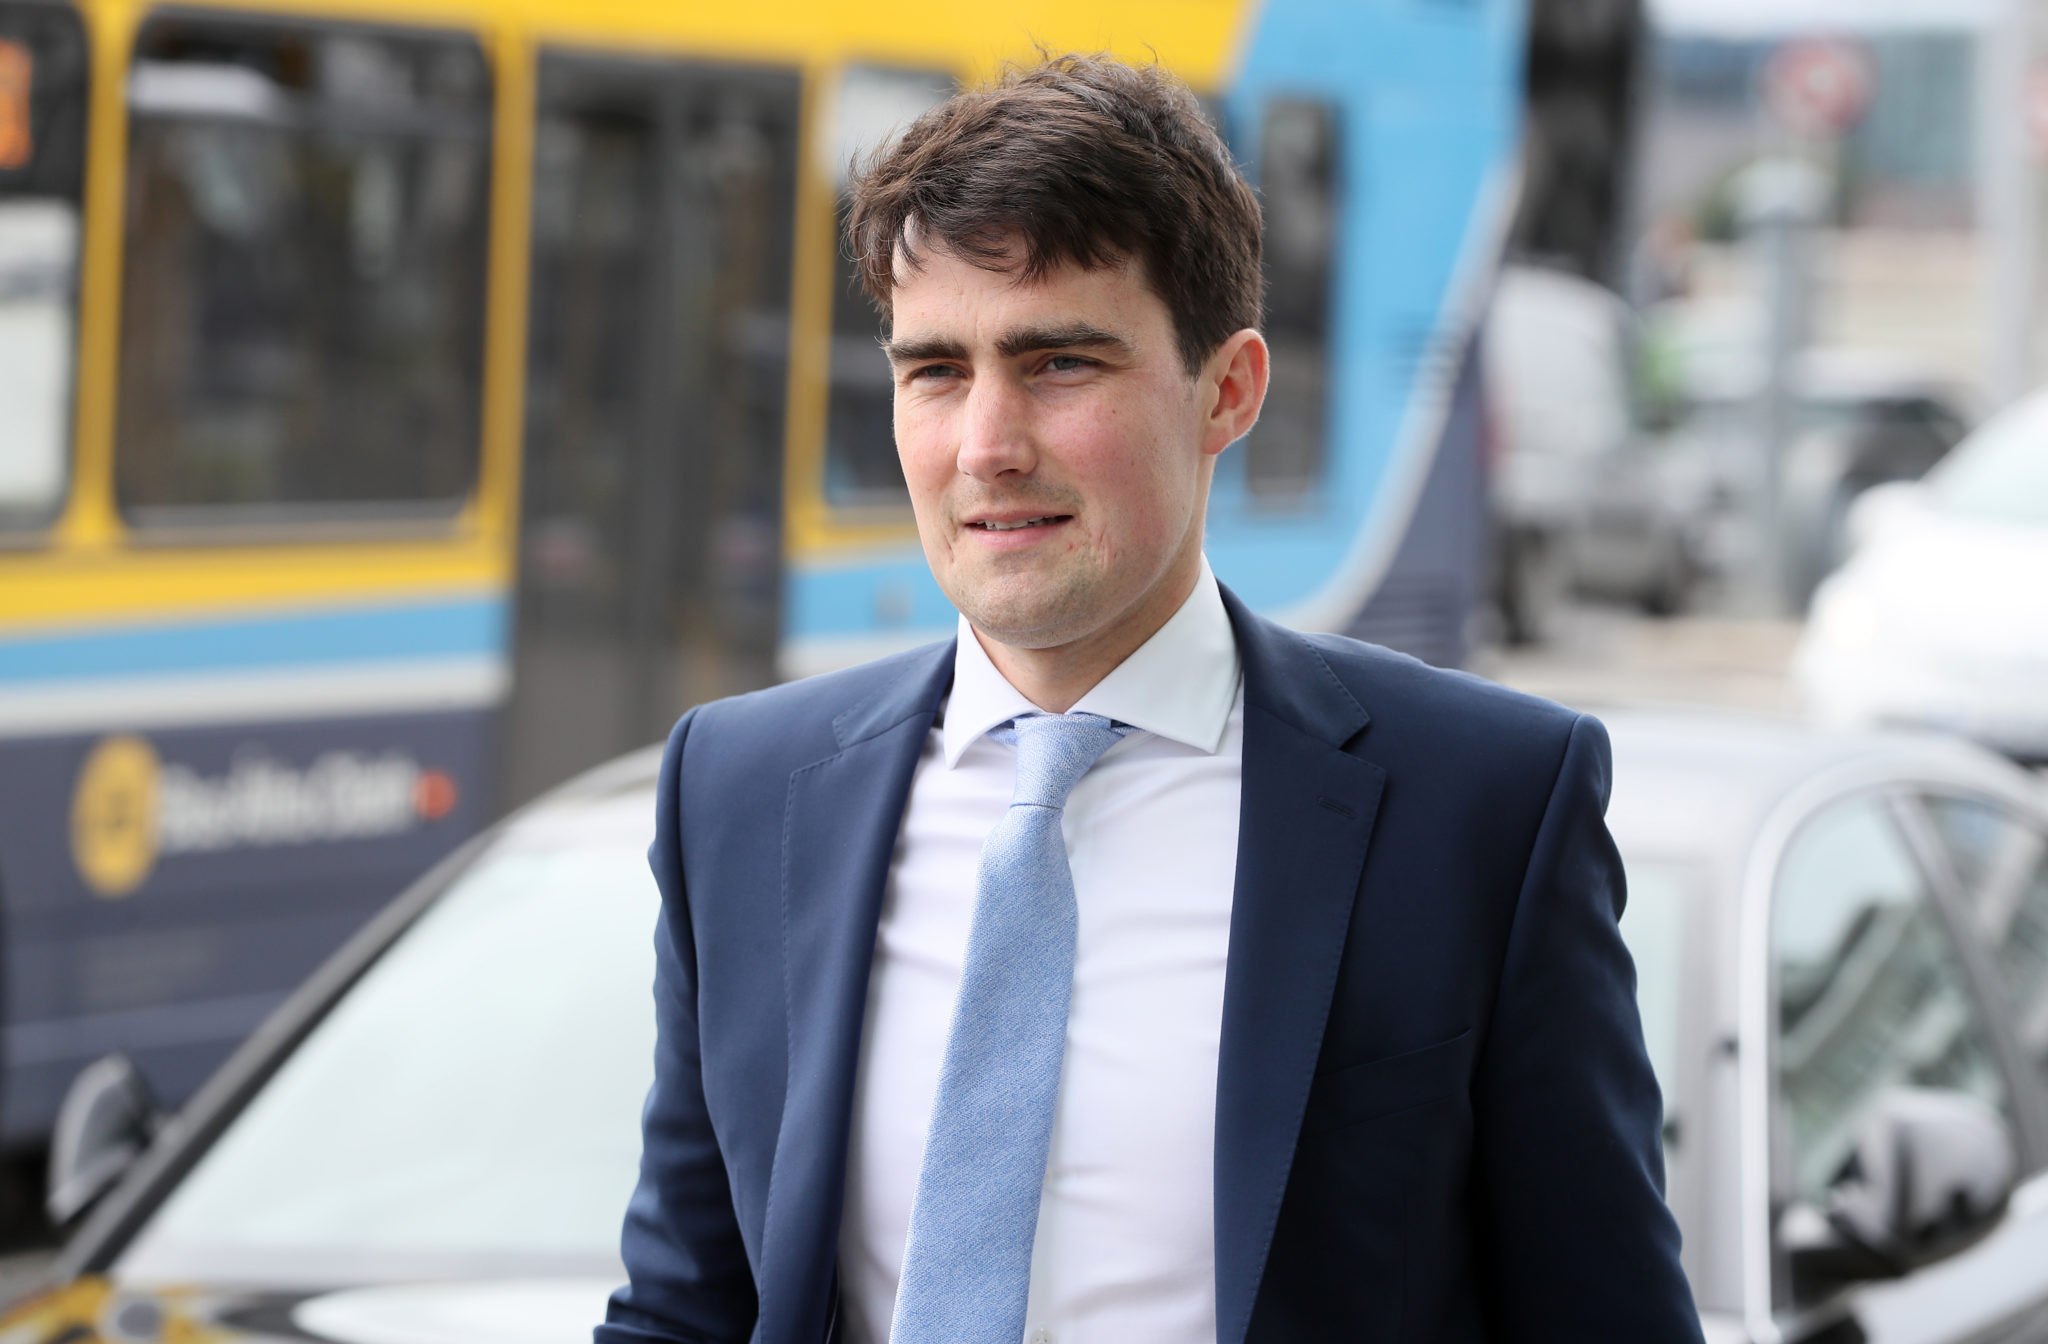 The Minister of State for Sport Jack Chambers arriving at the Convention Centre Dublin for a Dáil session, 15-07-2020. Image: Brian Lawless/PA Archive/PA Images